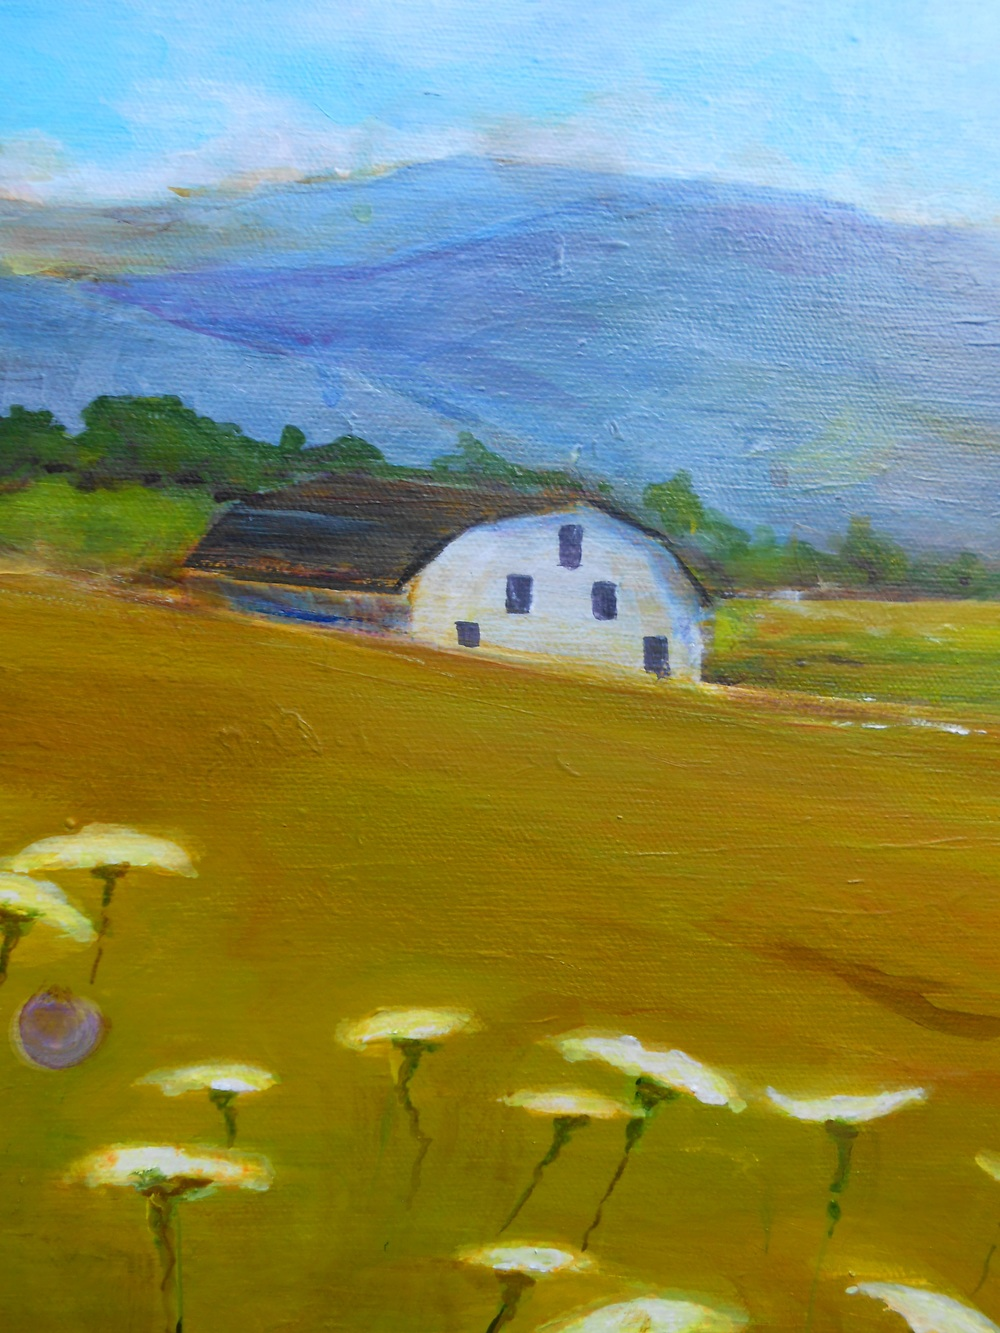 Shenandoah Valley 24 x 30 August 2014 (detail4).JPG